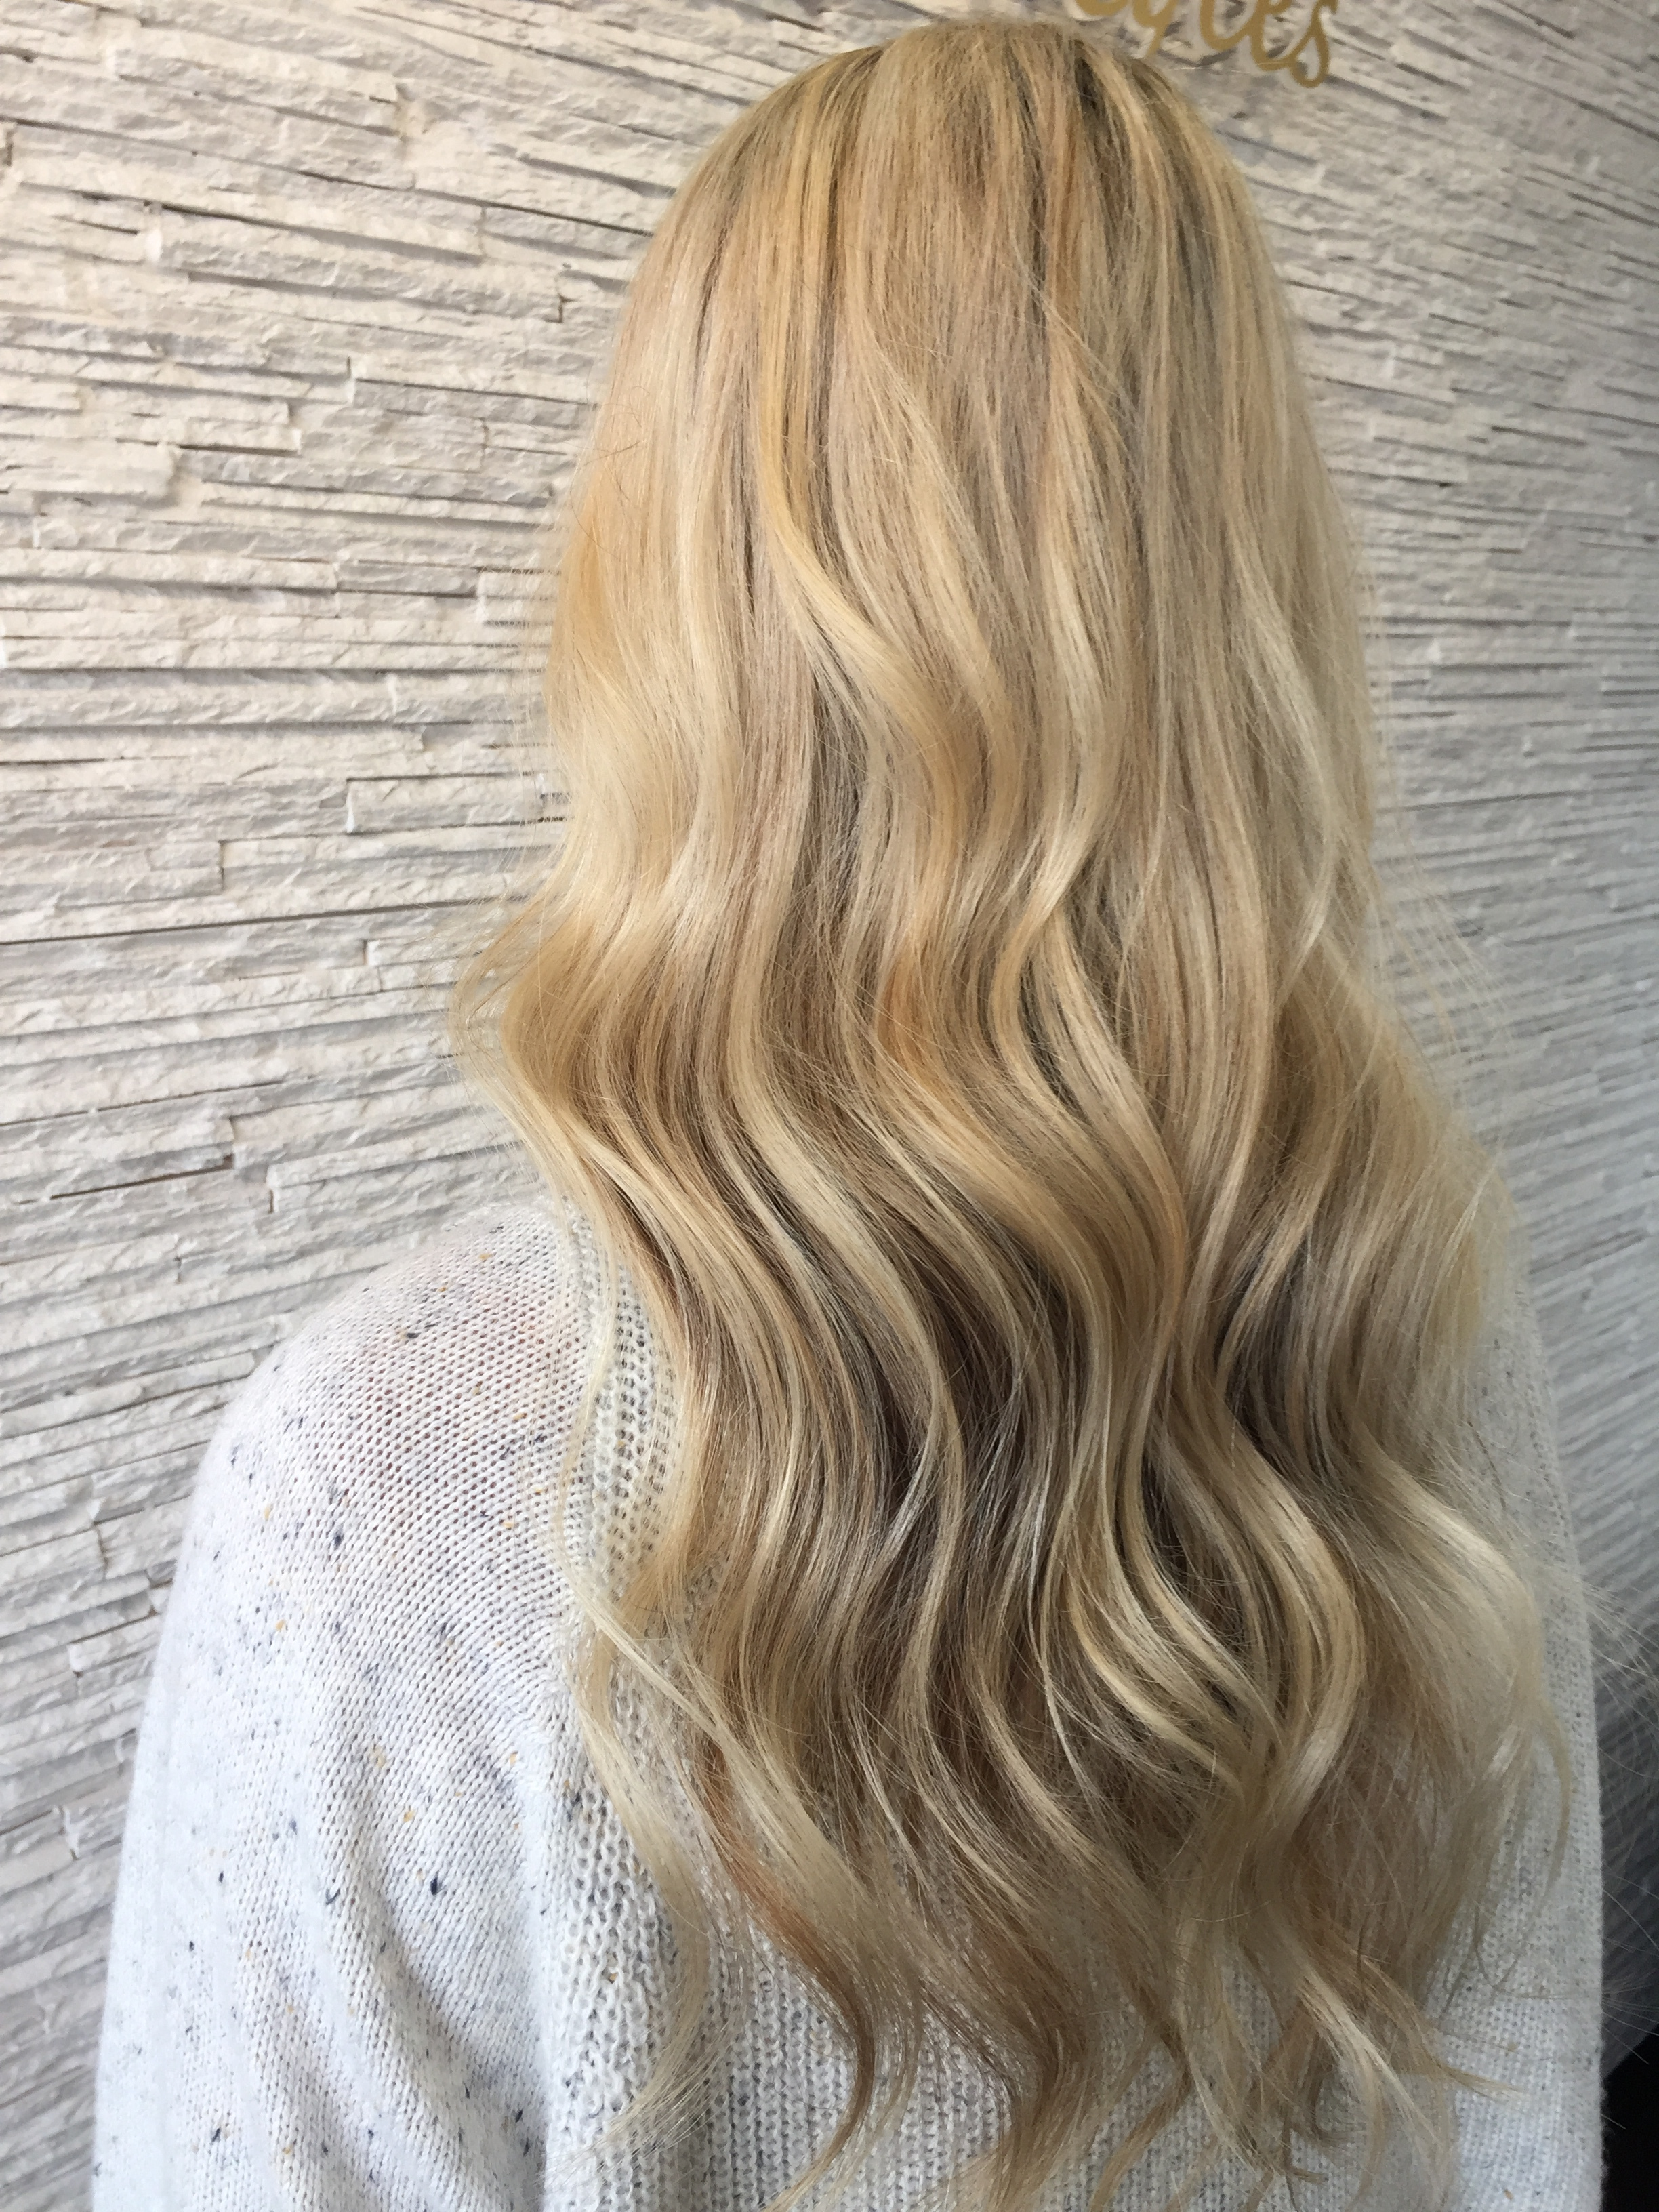 Fall Winter Hair Color Trends Suite Hairstyles